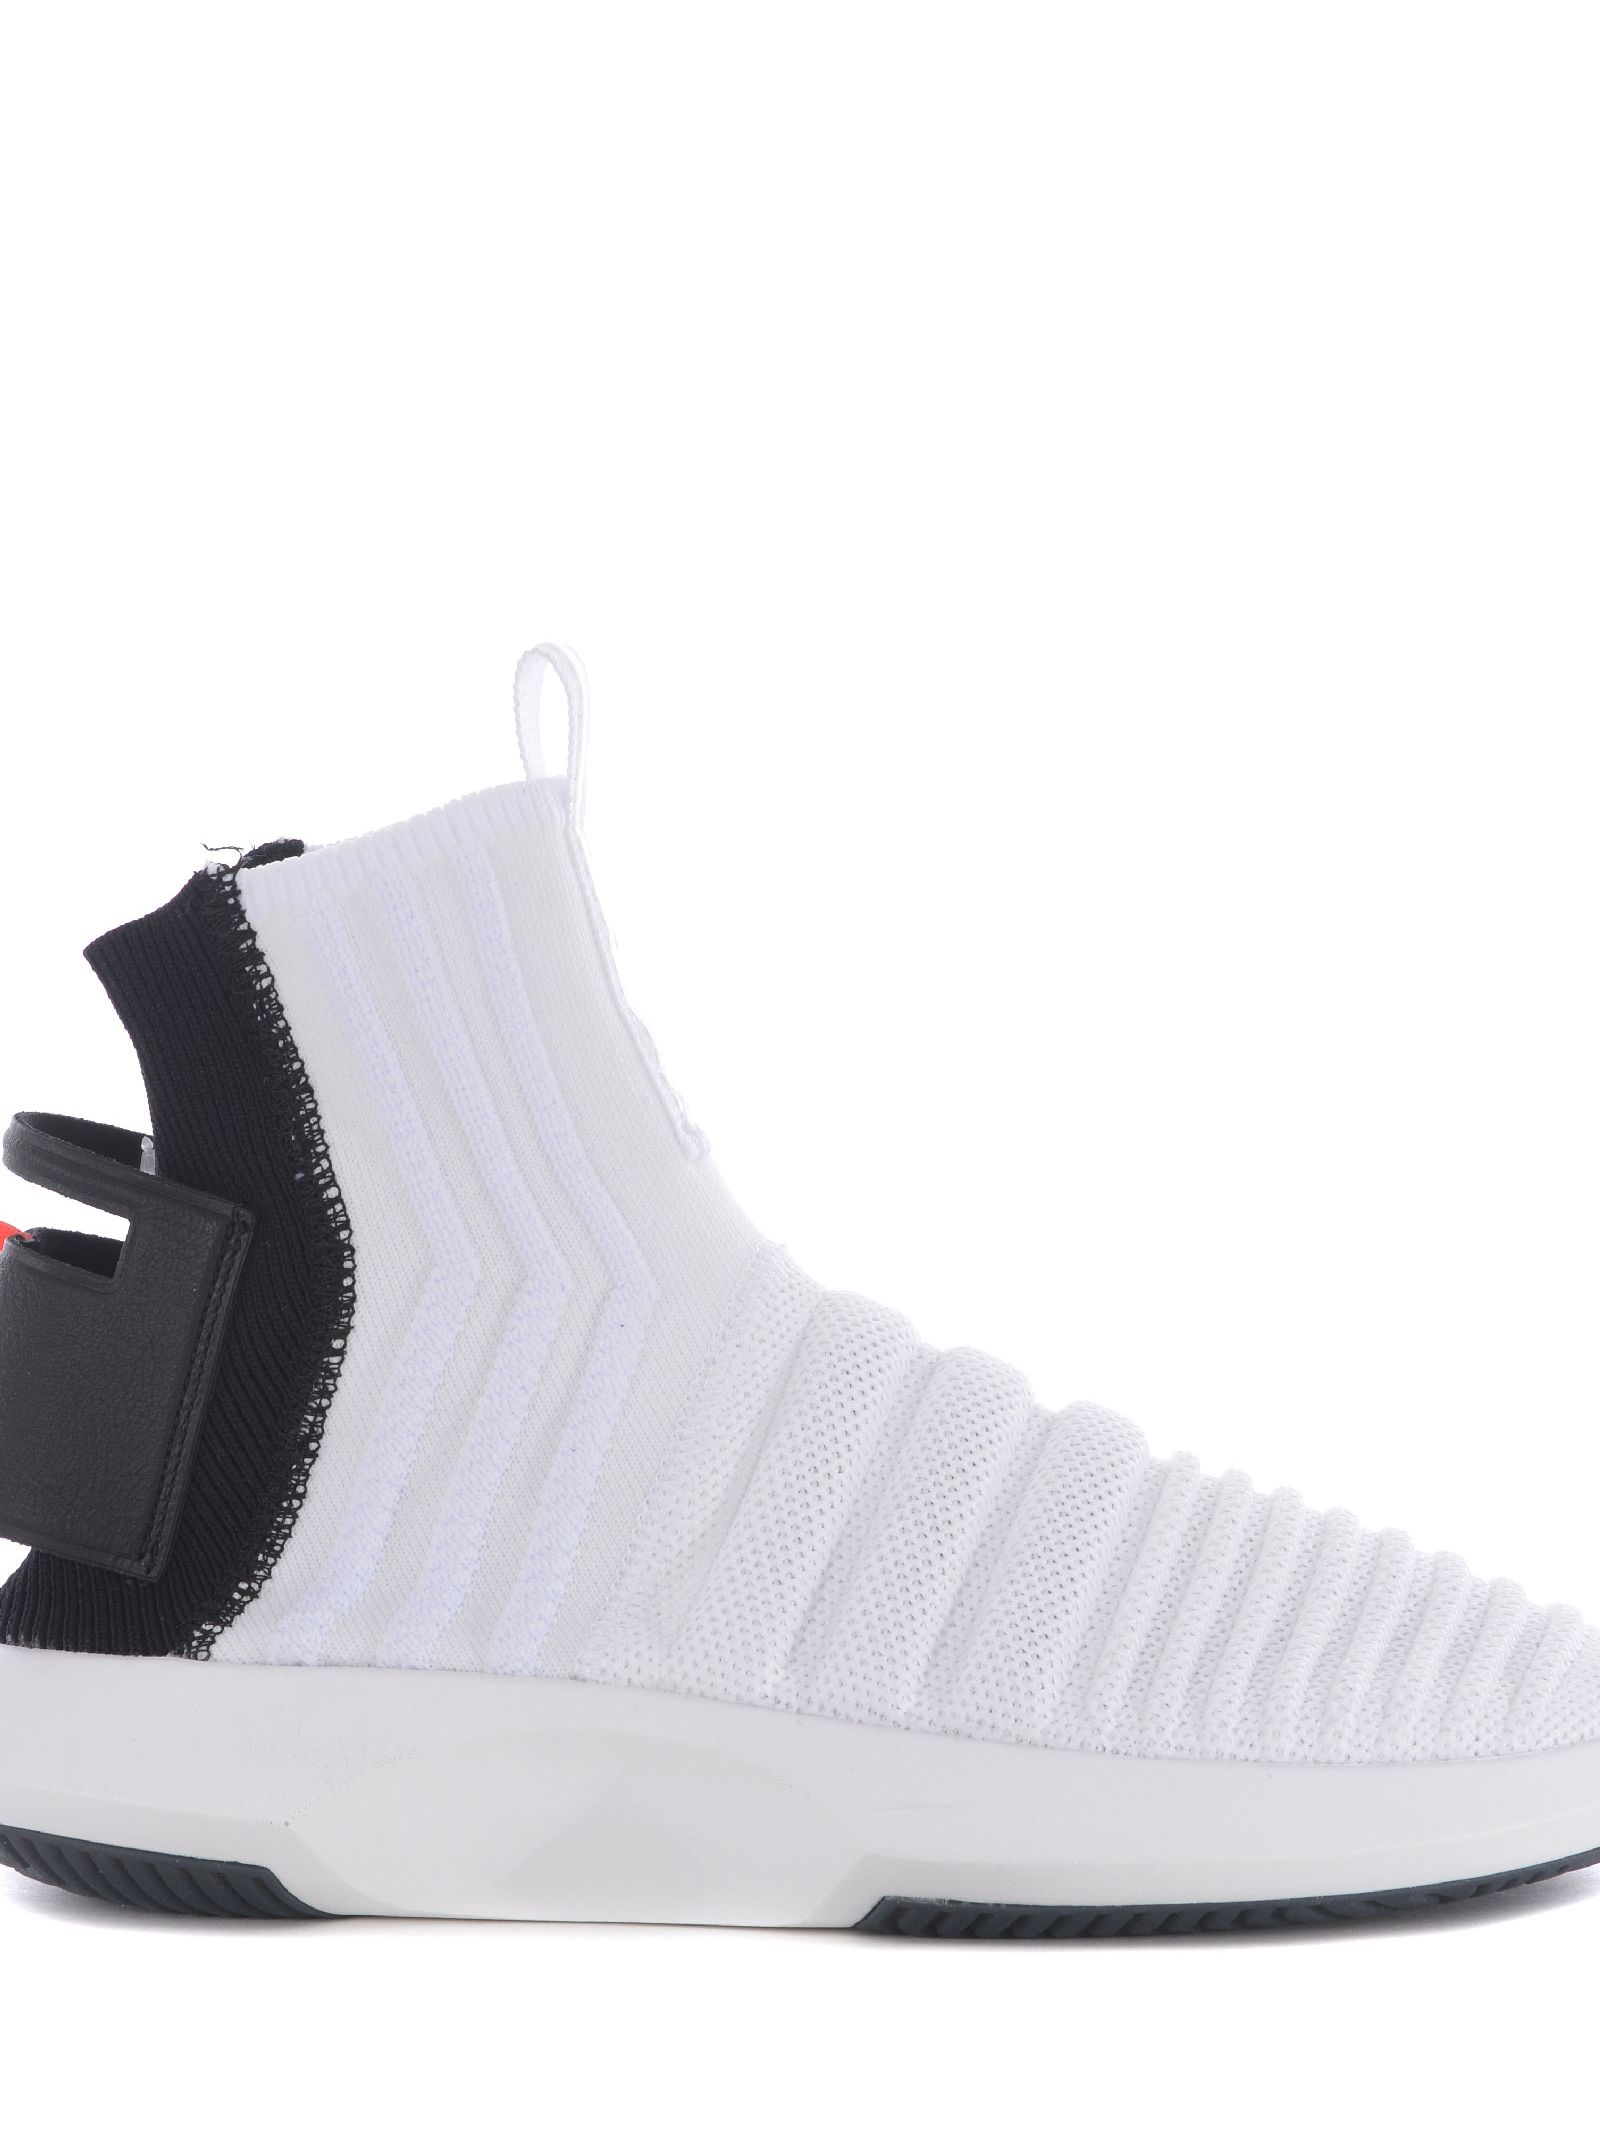 Adidas Originals Sock Adv Primeknit Sneakers